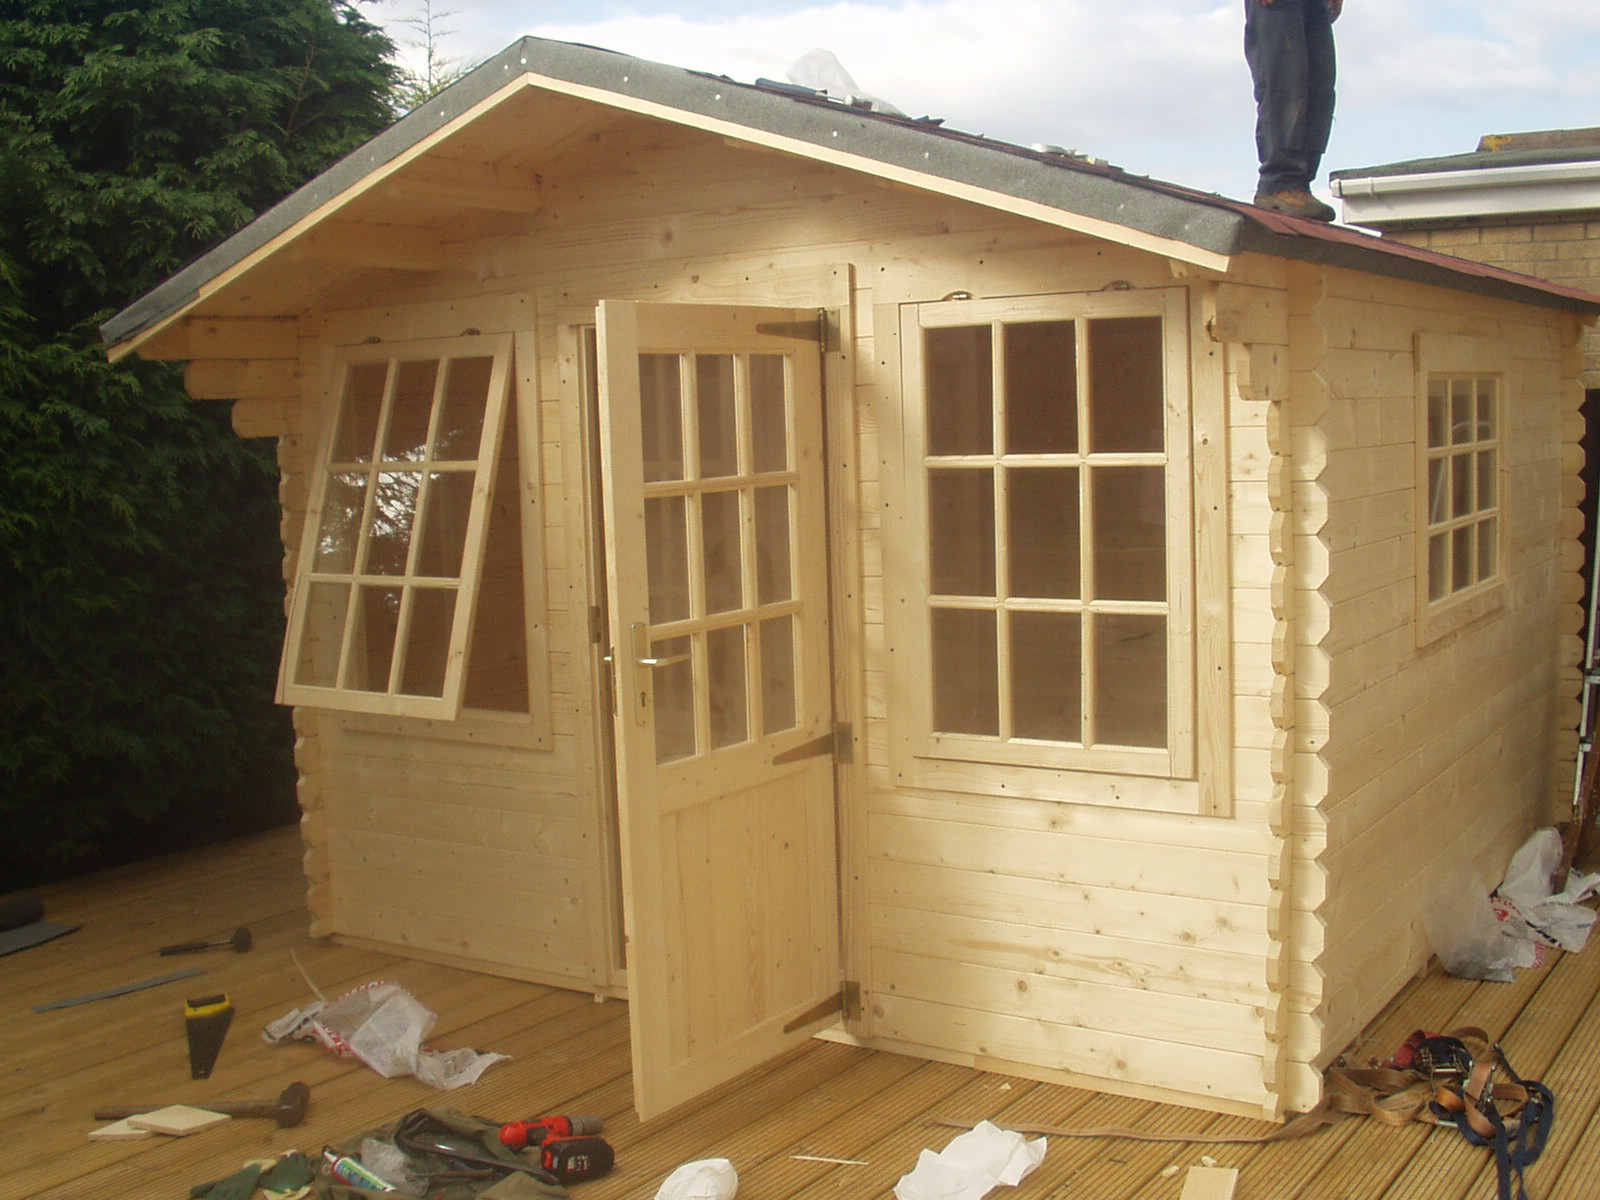 Best ideas about DIY House Kits . Save or Pin Shed Diy Build Backyard Sheds Has Your Free Tool Shed Now.